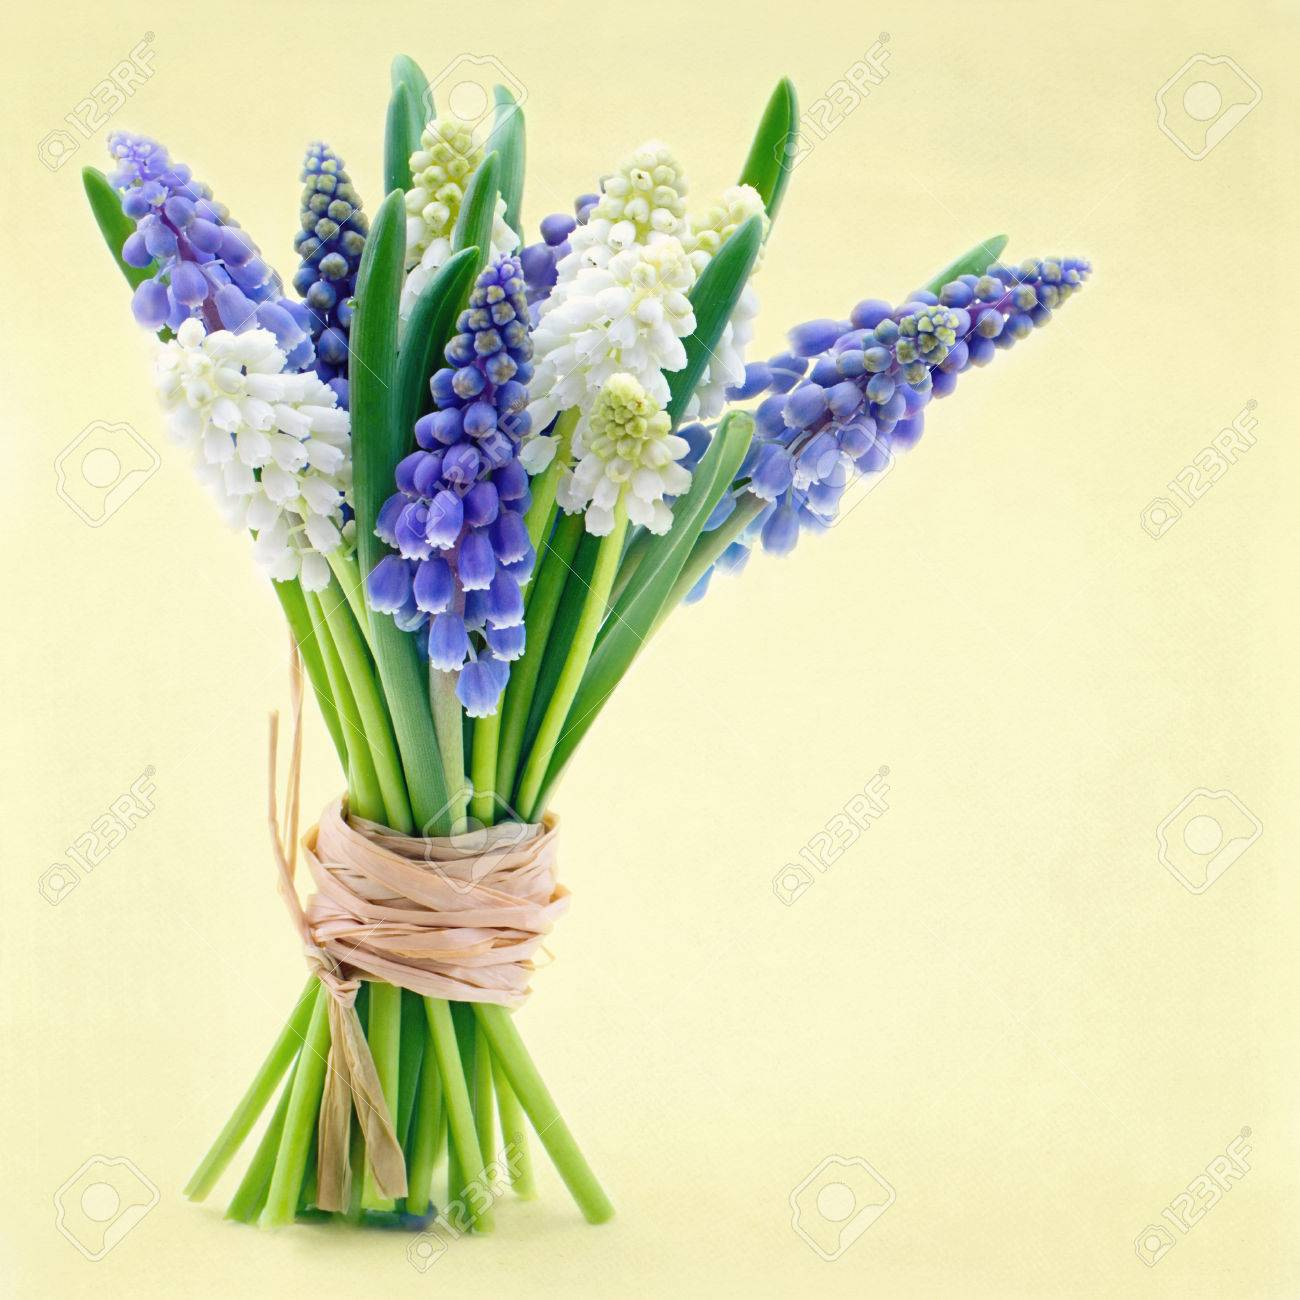 Bouquet Of Blue And White Grape Hyacinth Spring Flowers On Yellow ...